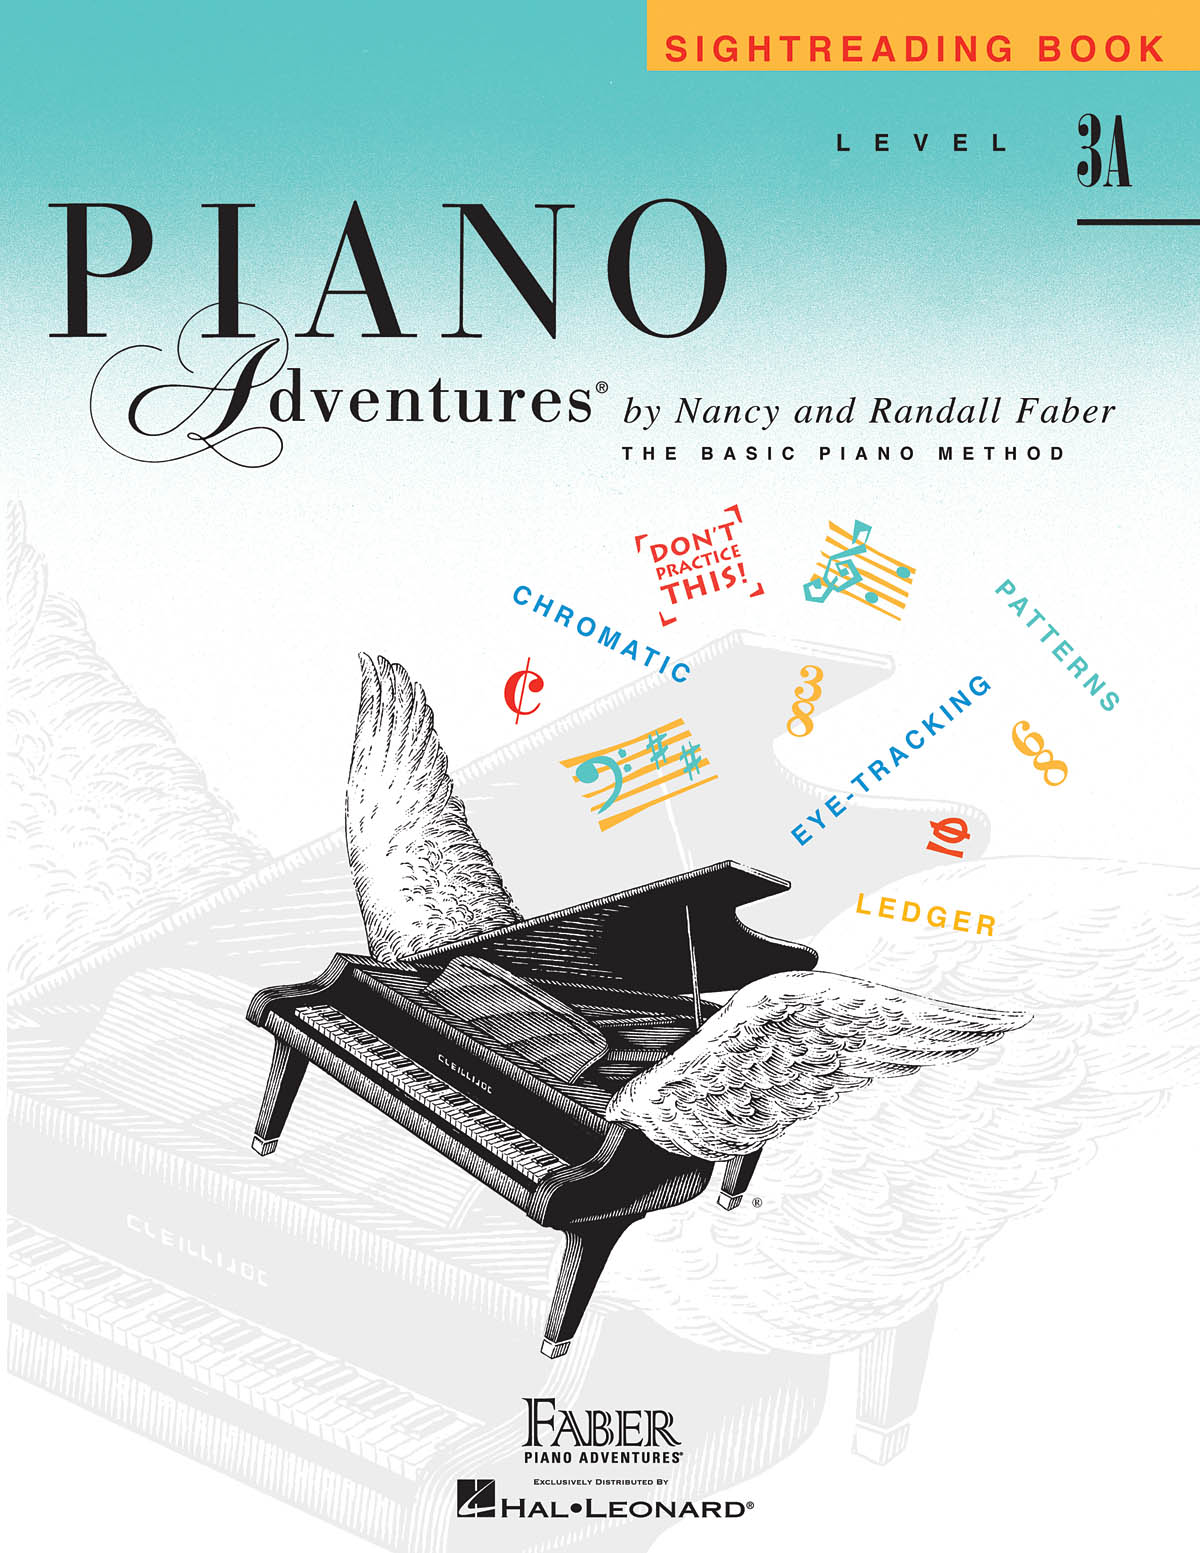 Faber Piano Adventures, Sightreading Book, Level 3A